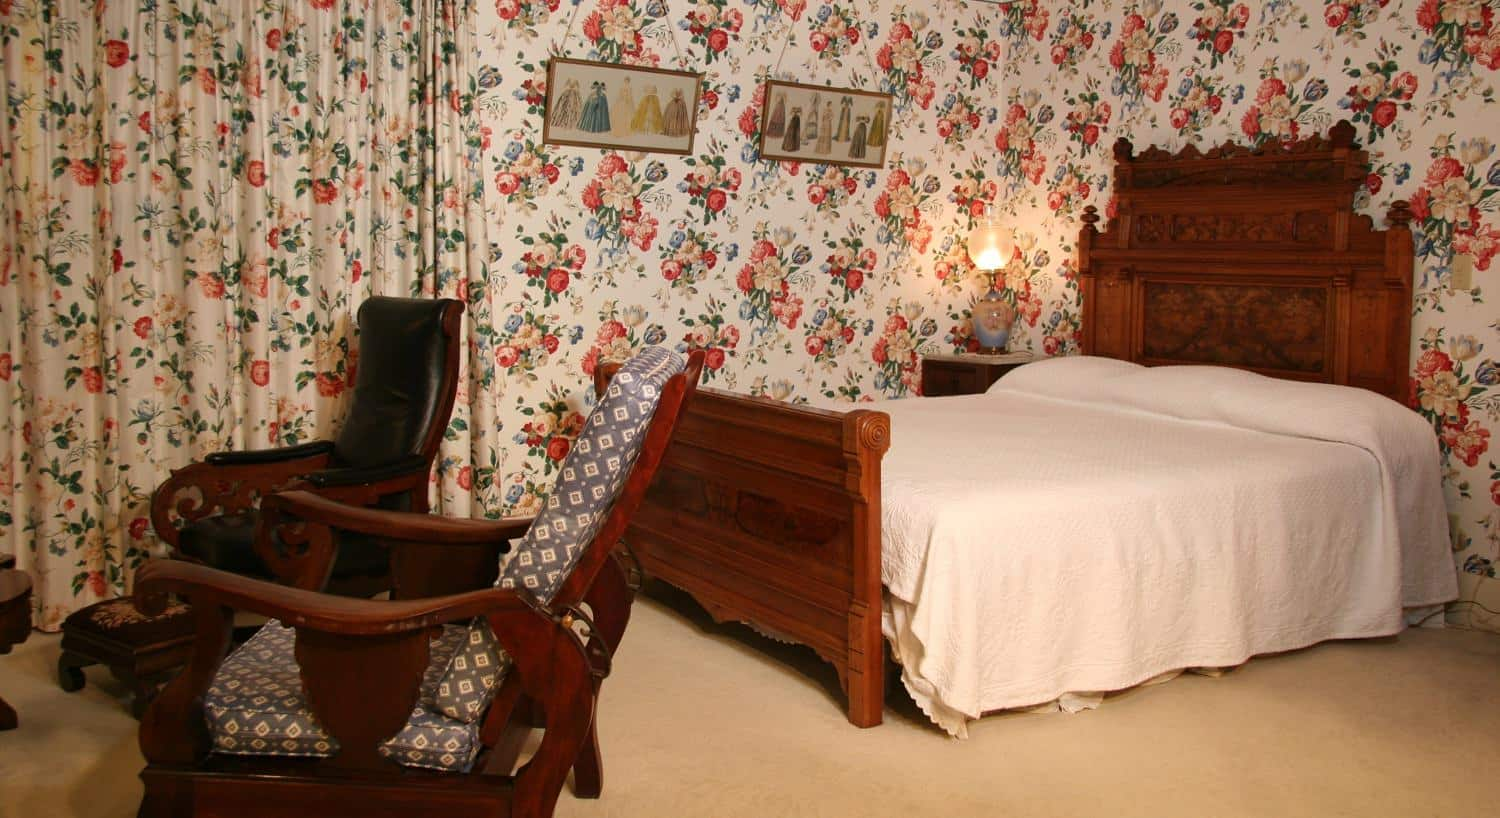 The Suite guest room with red and green floral walls, carpeting, wood bed and two sitting chairs